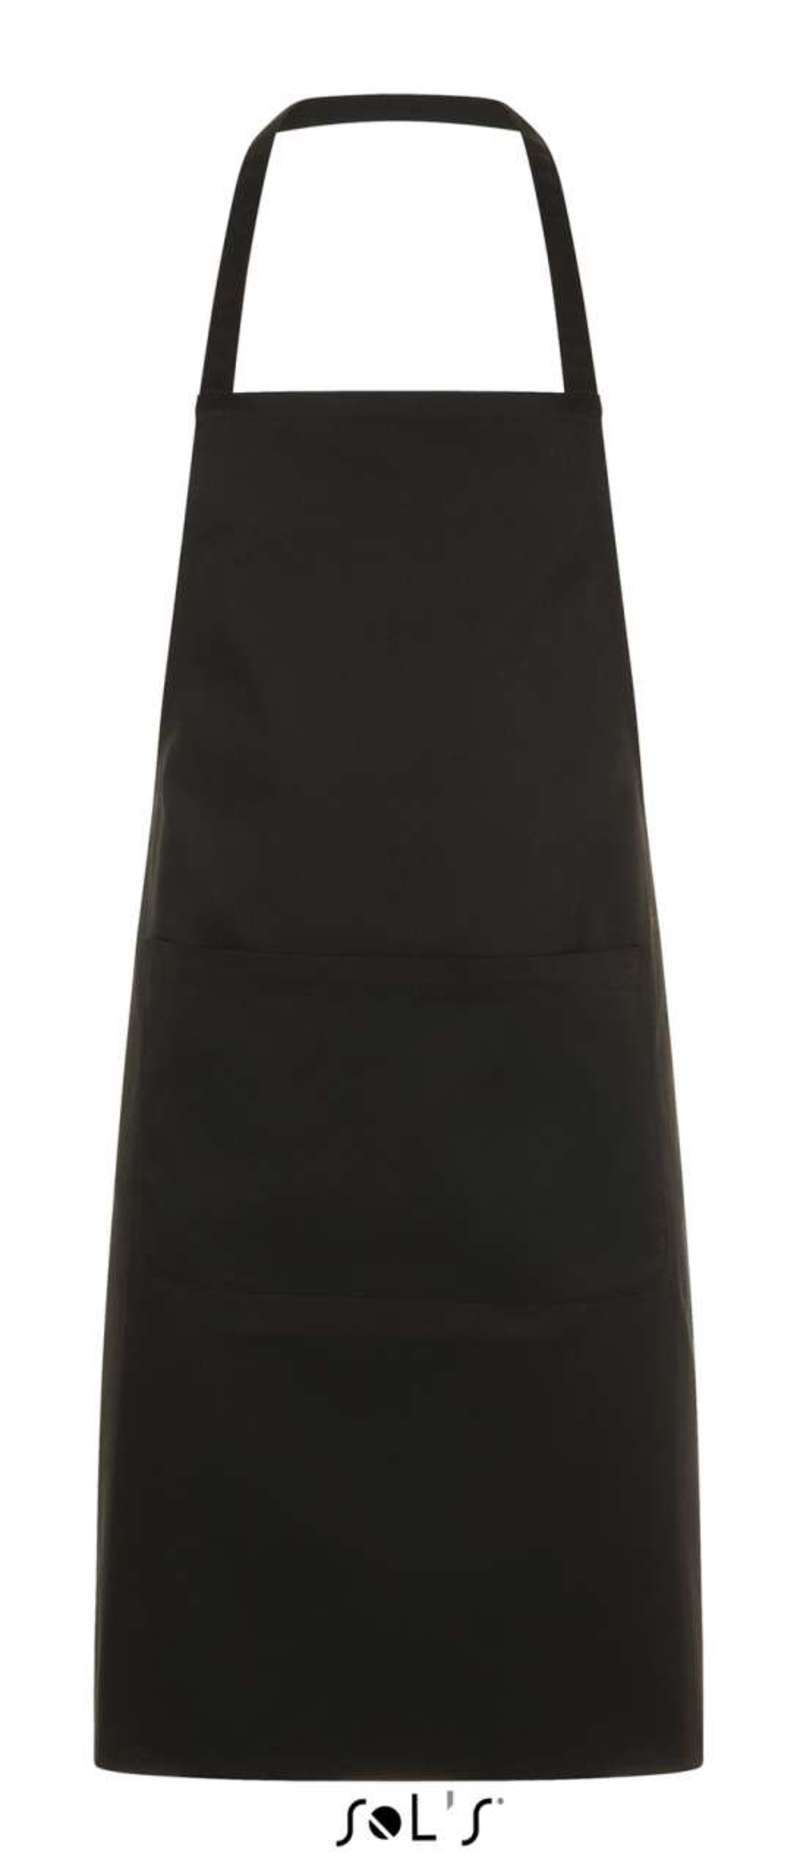 GRAMERCY - LONG APRON WITH POCKET